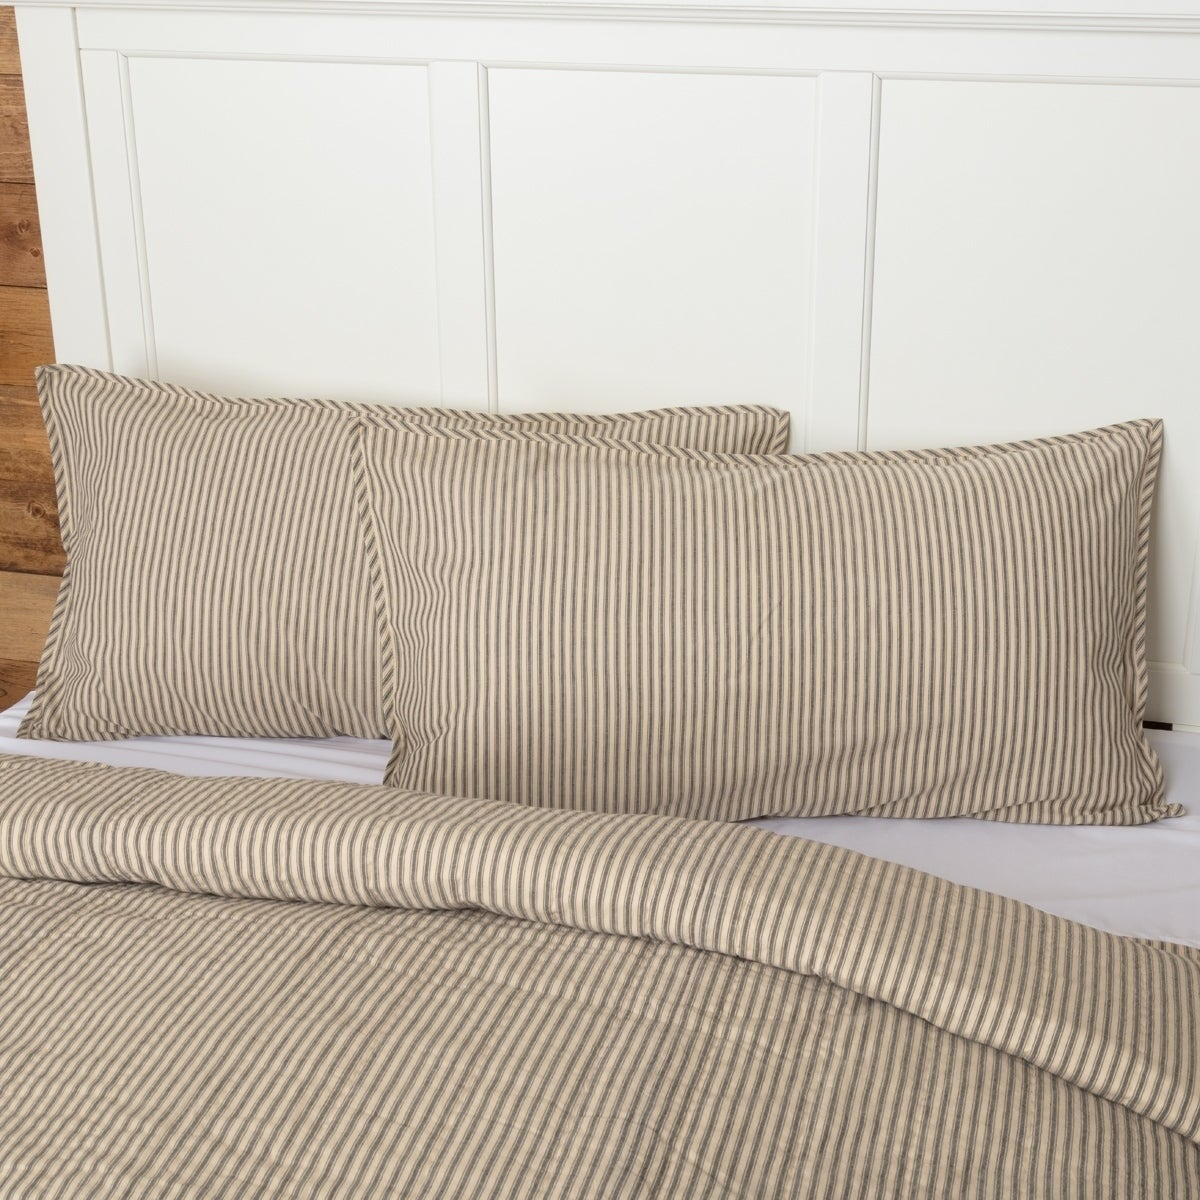 SERENITY Tan Twin Cotton Woven Blanket//Coverlet Farmhouse Bedding VHC Brands